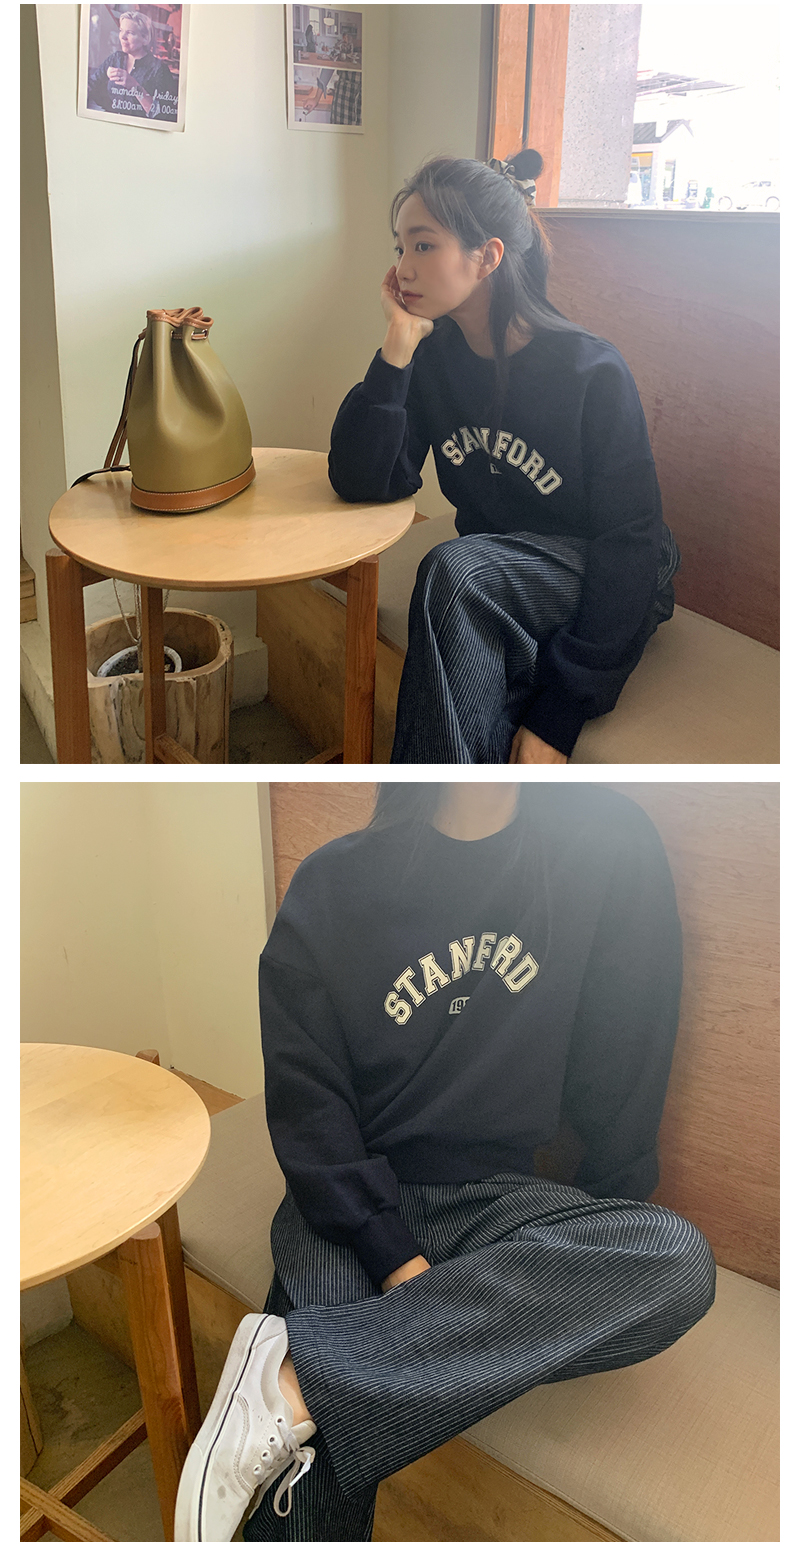 Stanford Lettering sweat shirt